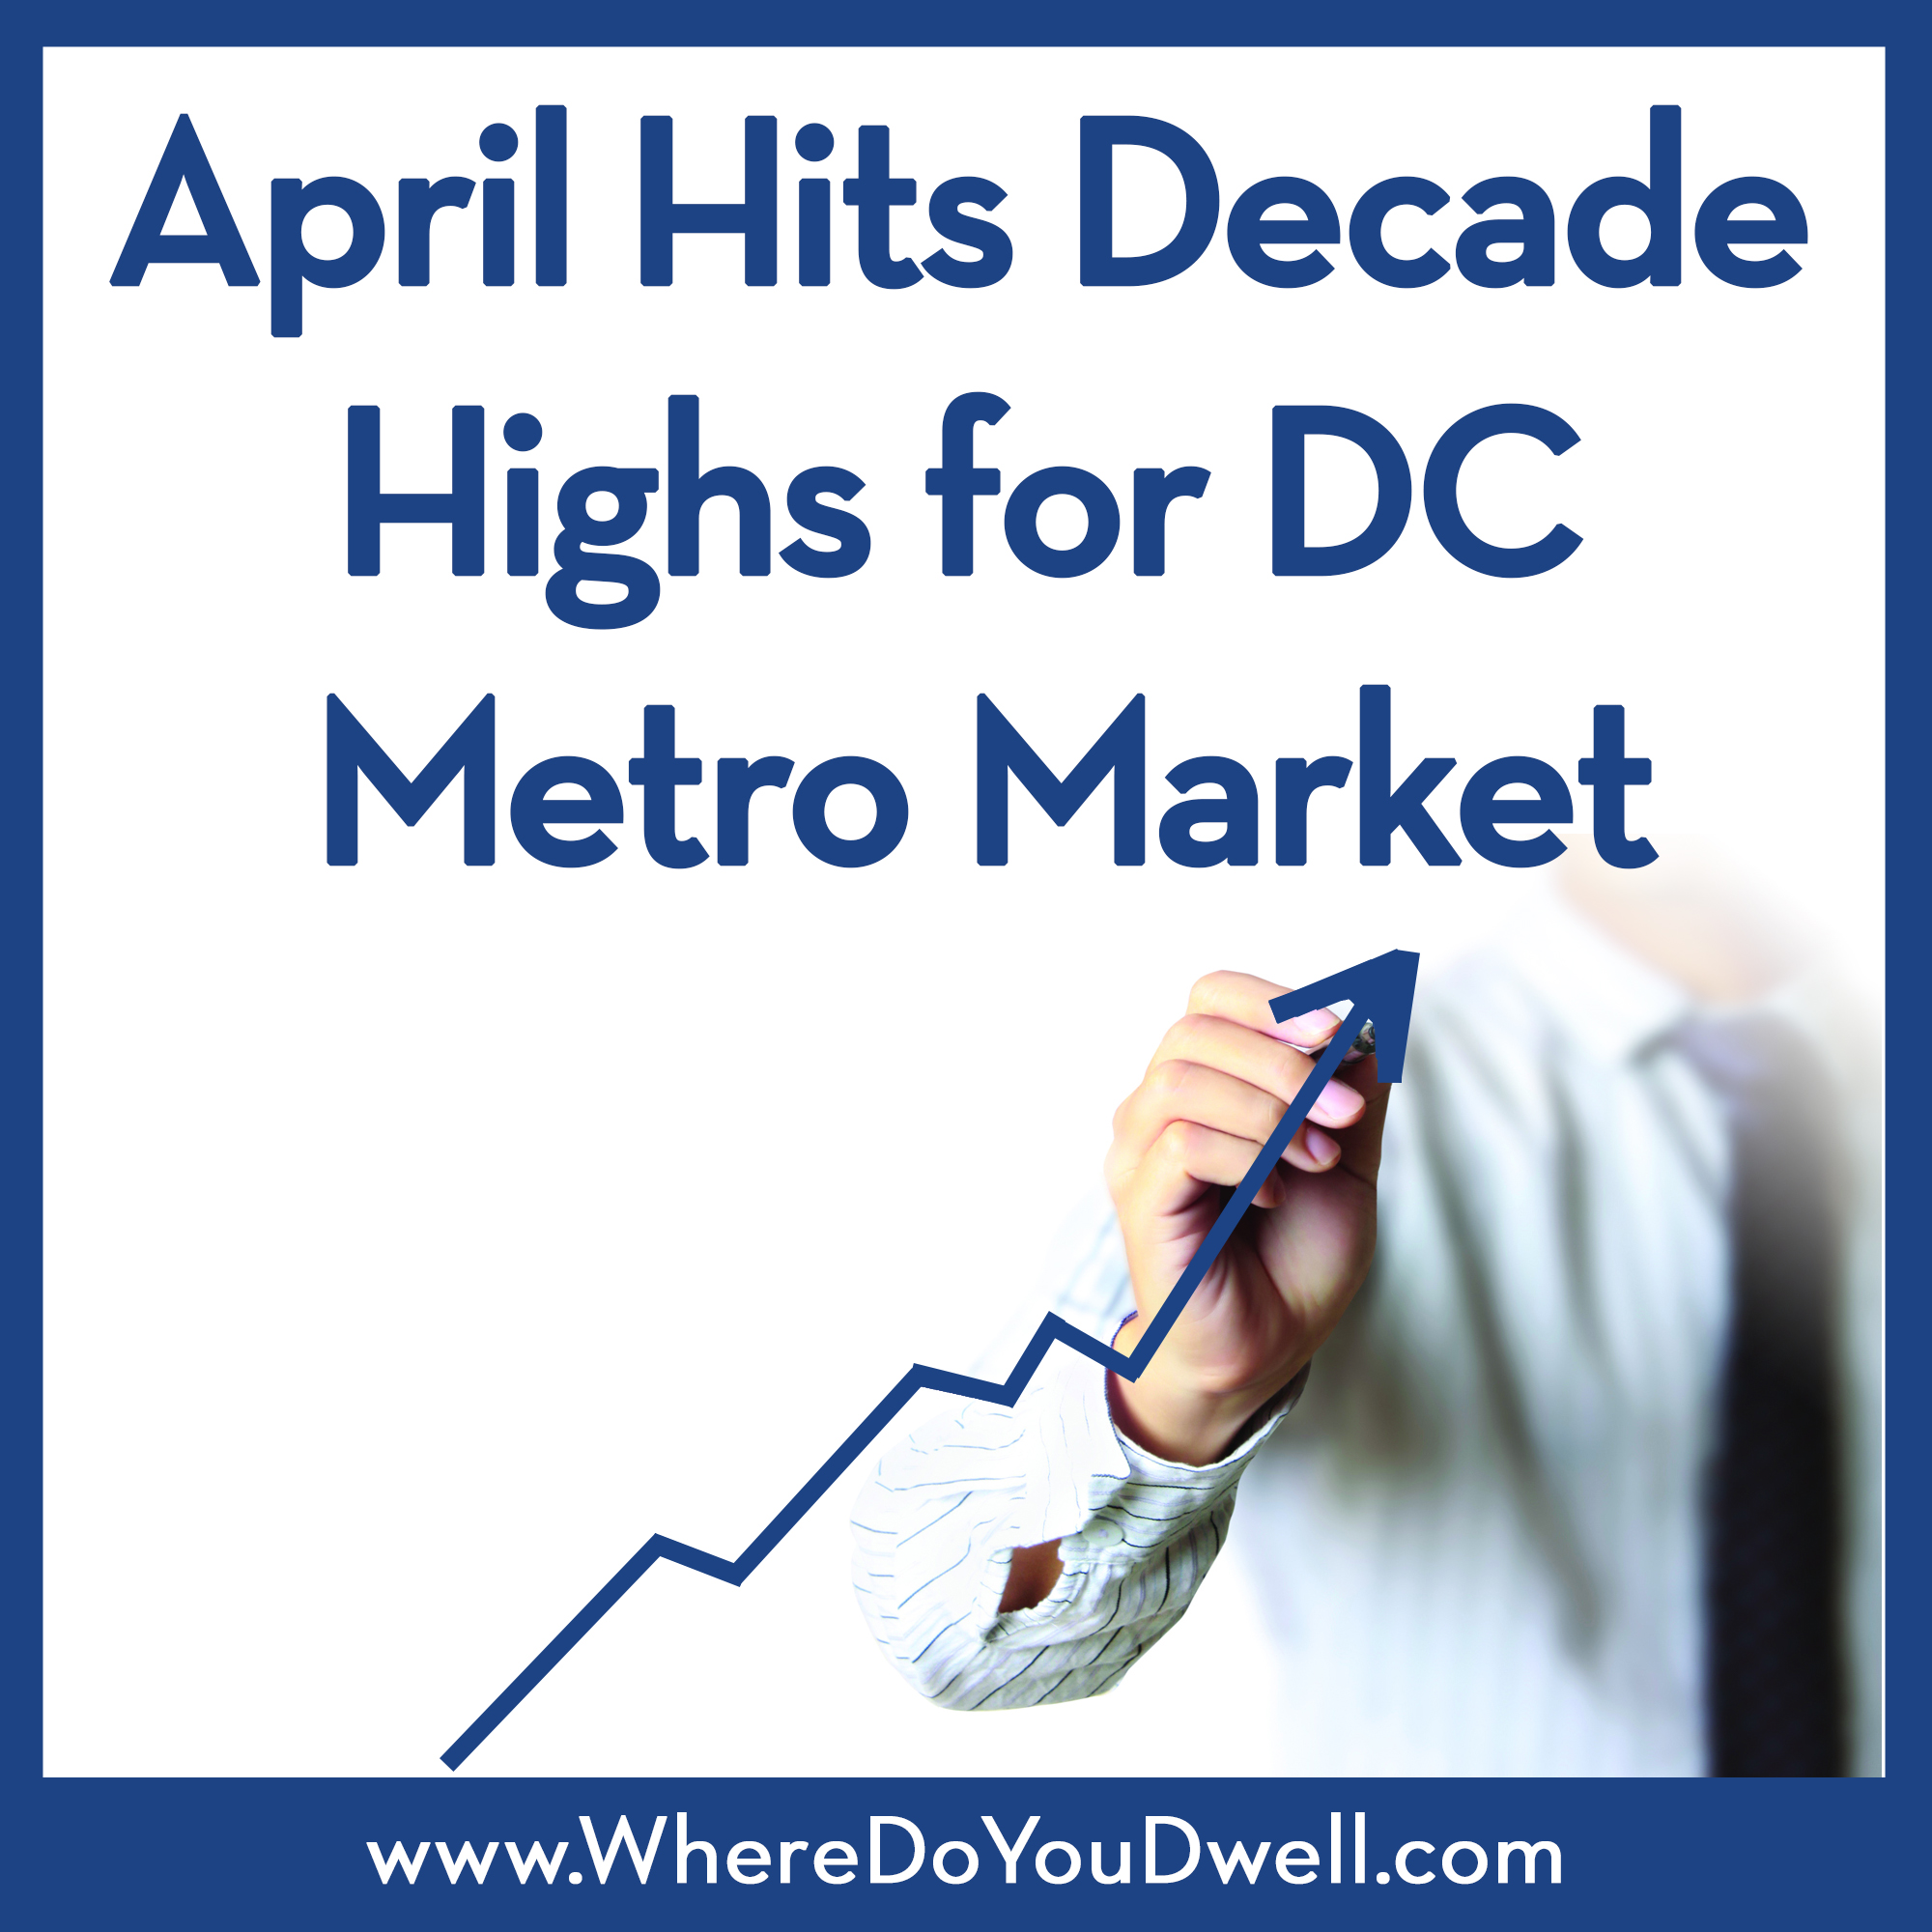 April Hits Decade Highs for DC Metro Market